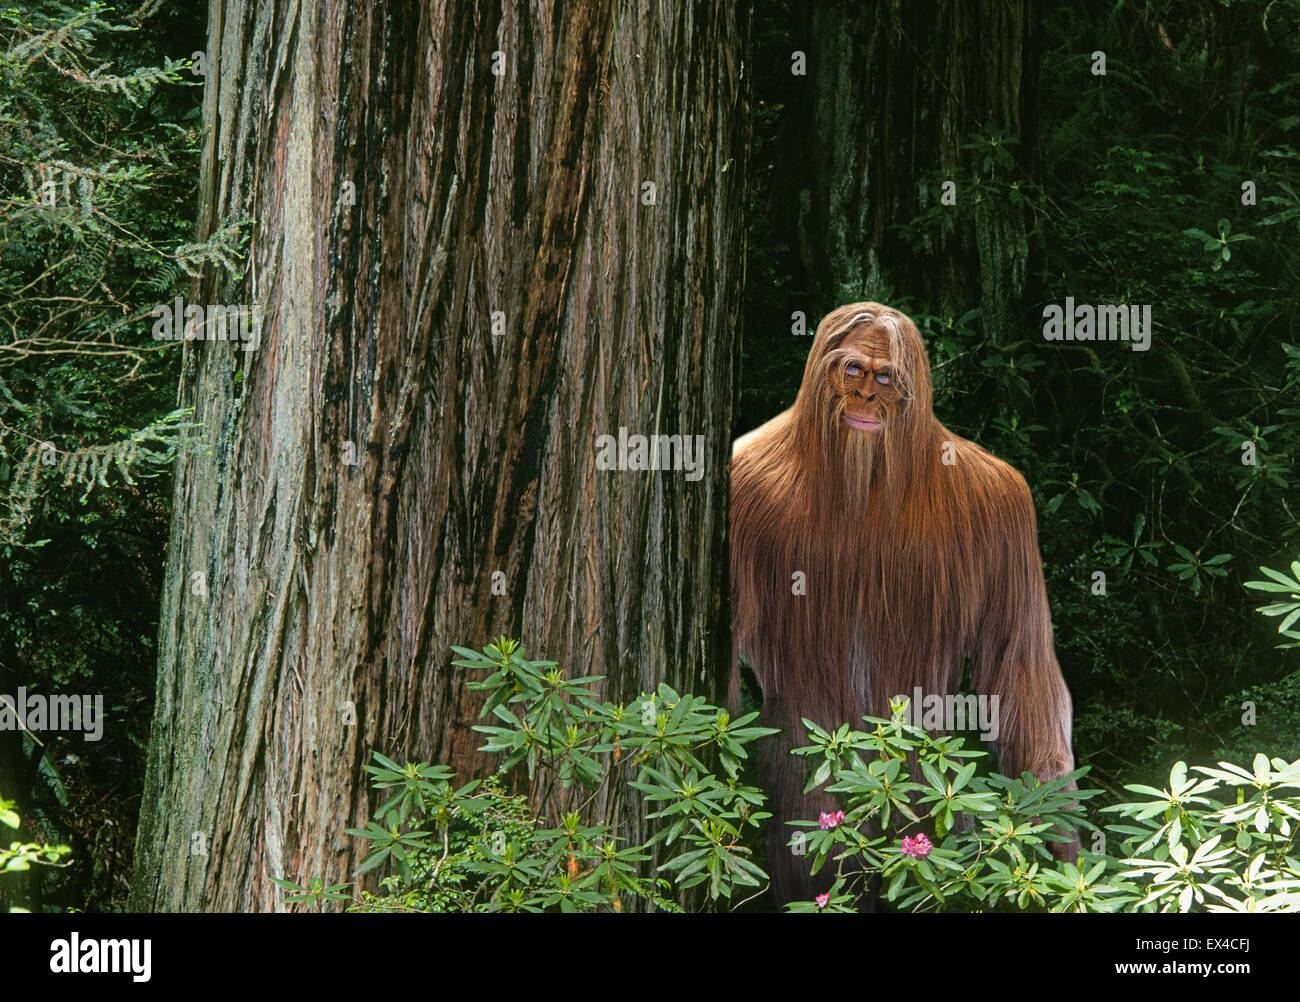 A Bigfoot or Sasquatch hiding in a dense Pacific Northwest rain forest. - Stock Image